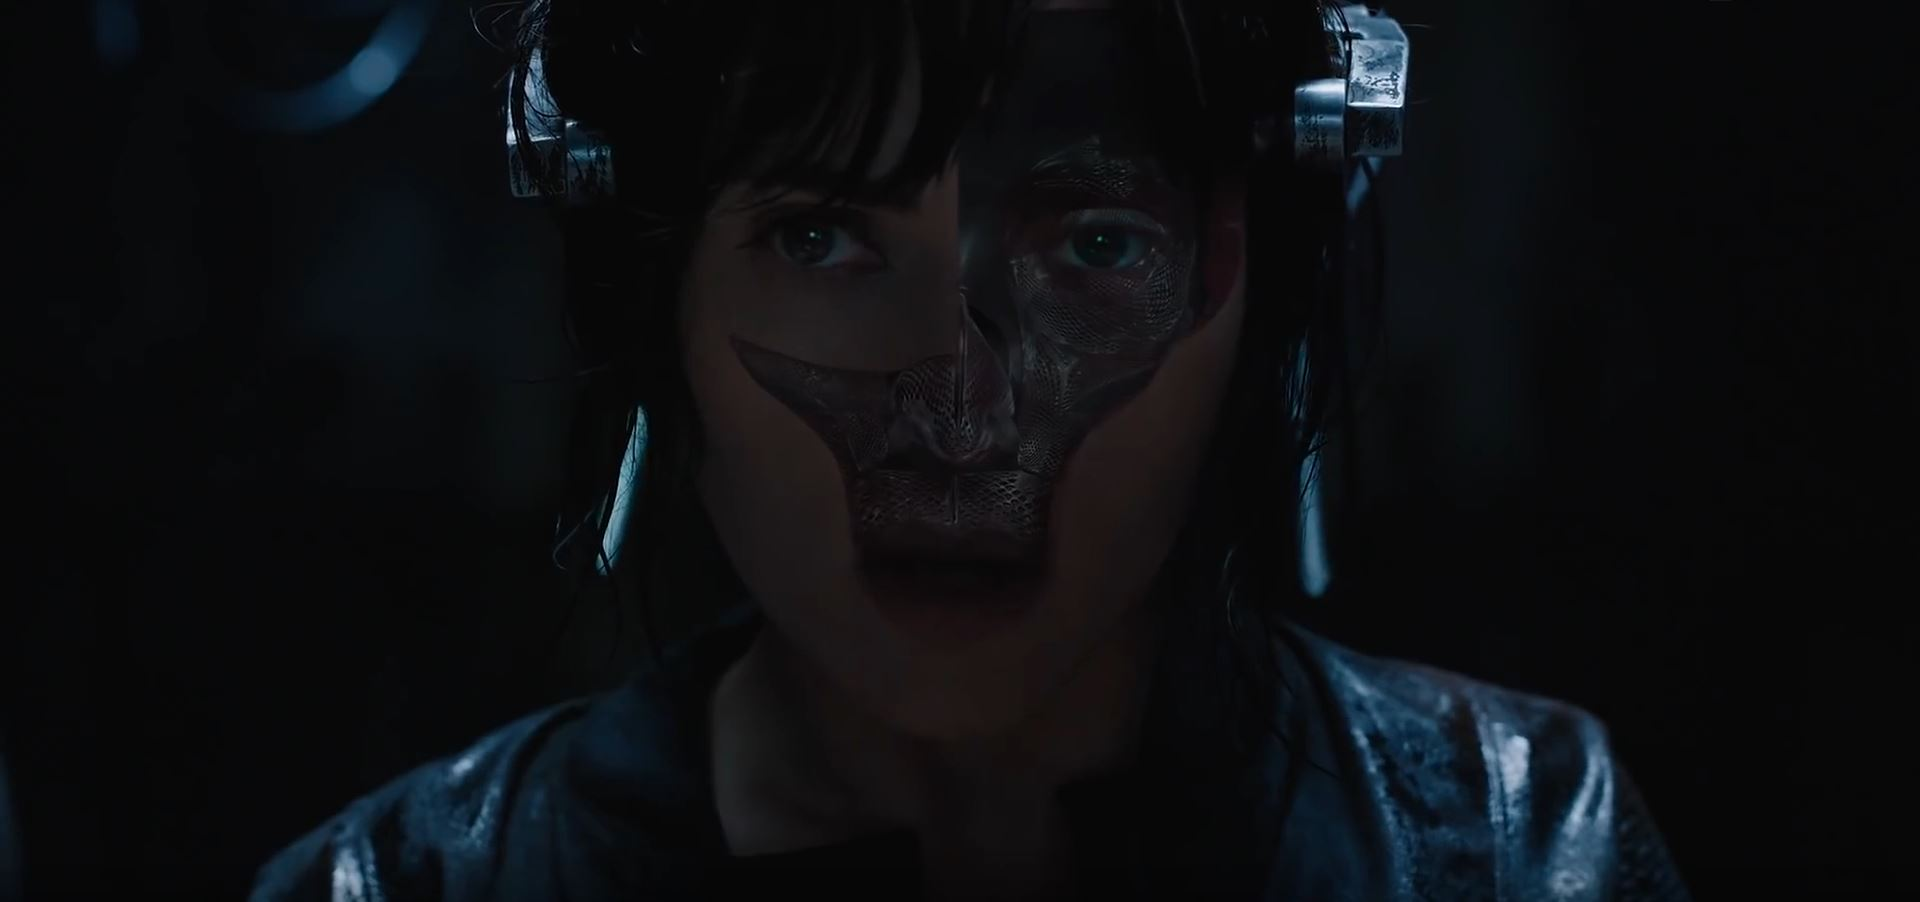 Ghost in the Shell - Major with her face removed - Super Bowl Trailers